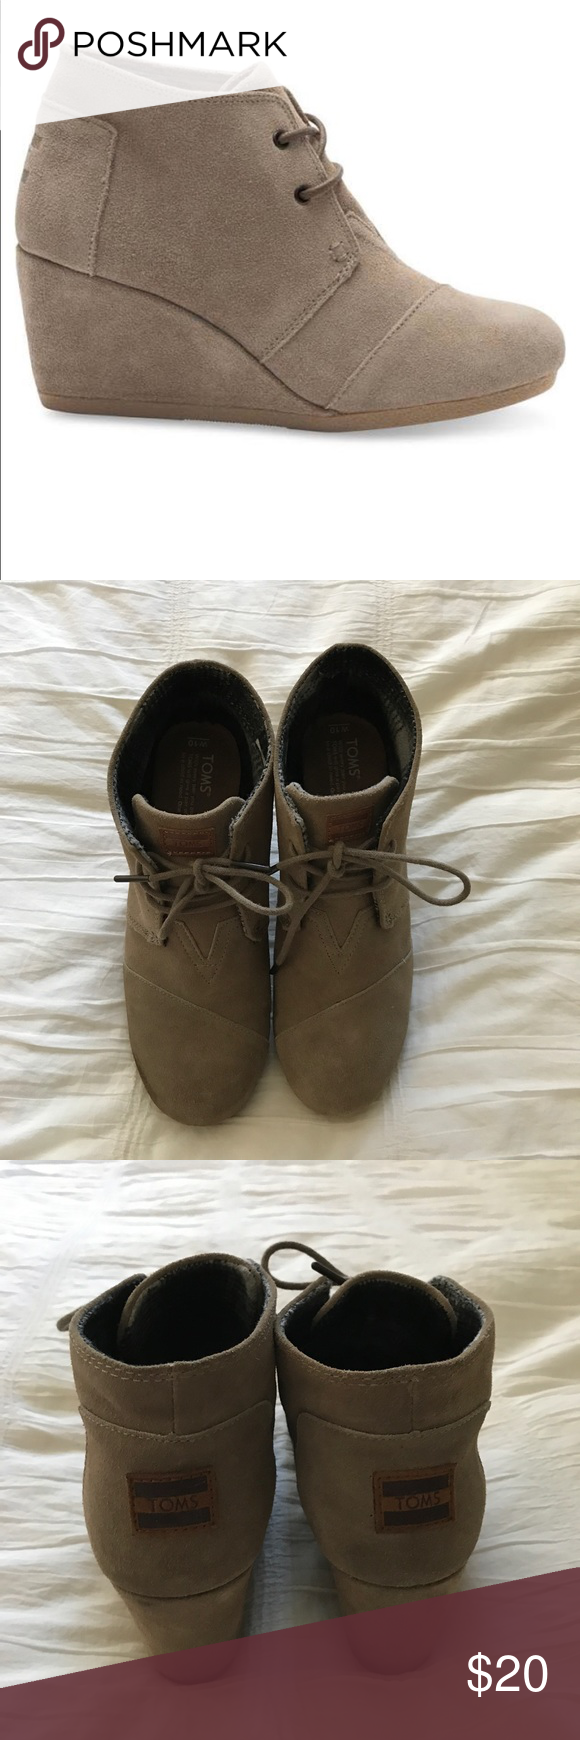 Toms Suede Booties Gently used Toms desert wedge booties in taupe! Toms Shoes Ankle Boots & Booties